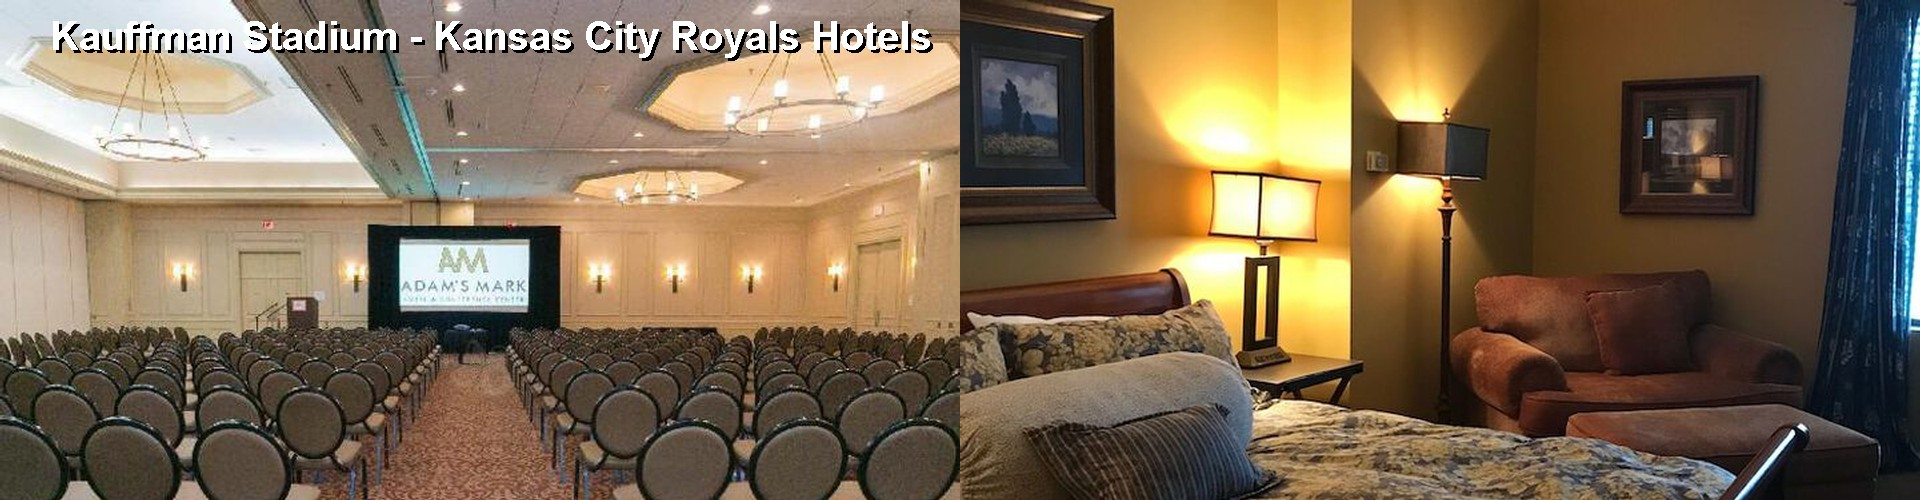 3 Best Hotels near Kauffman Stadium - Kansas City Royals